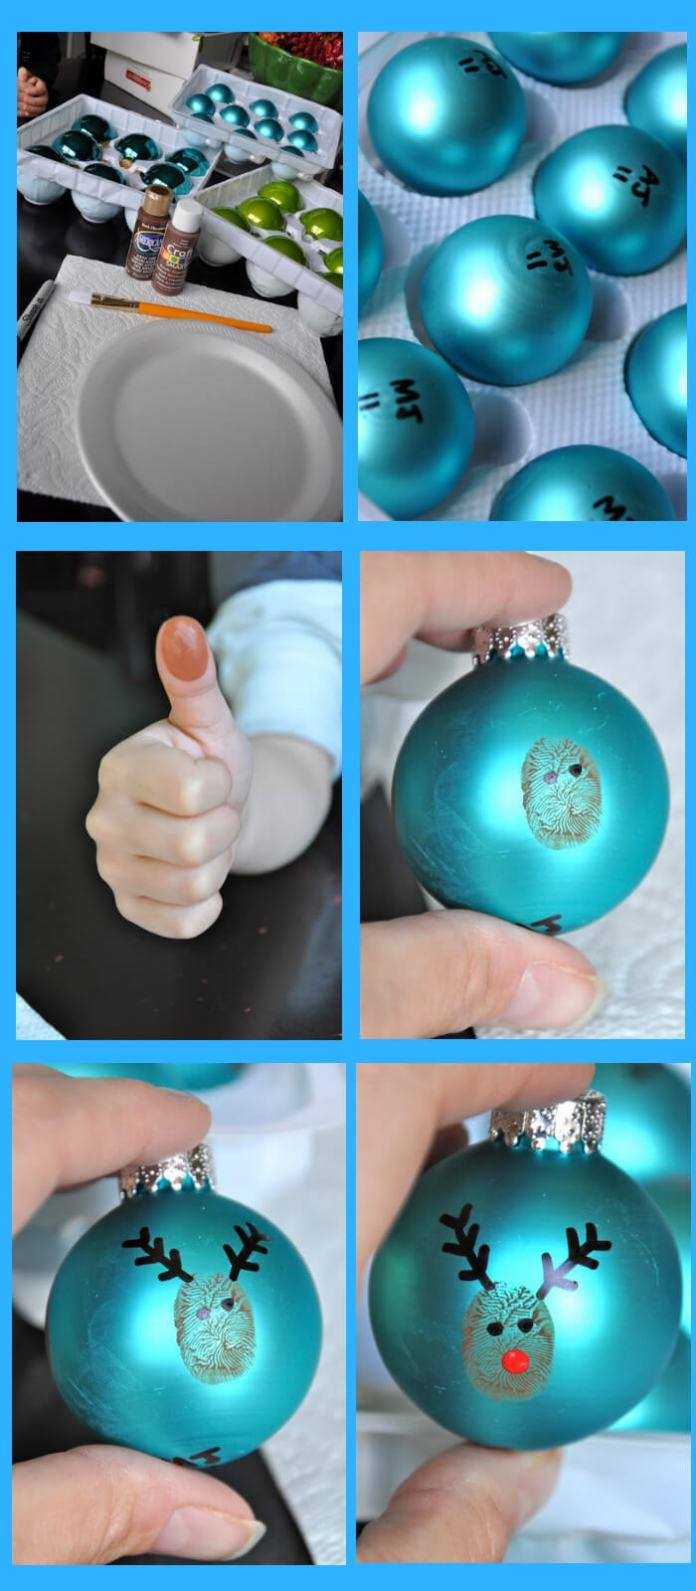 Thumbprint Ornaments | Cute and Easy Christmas Ornament Ideas